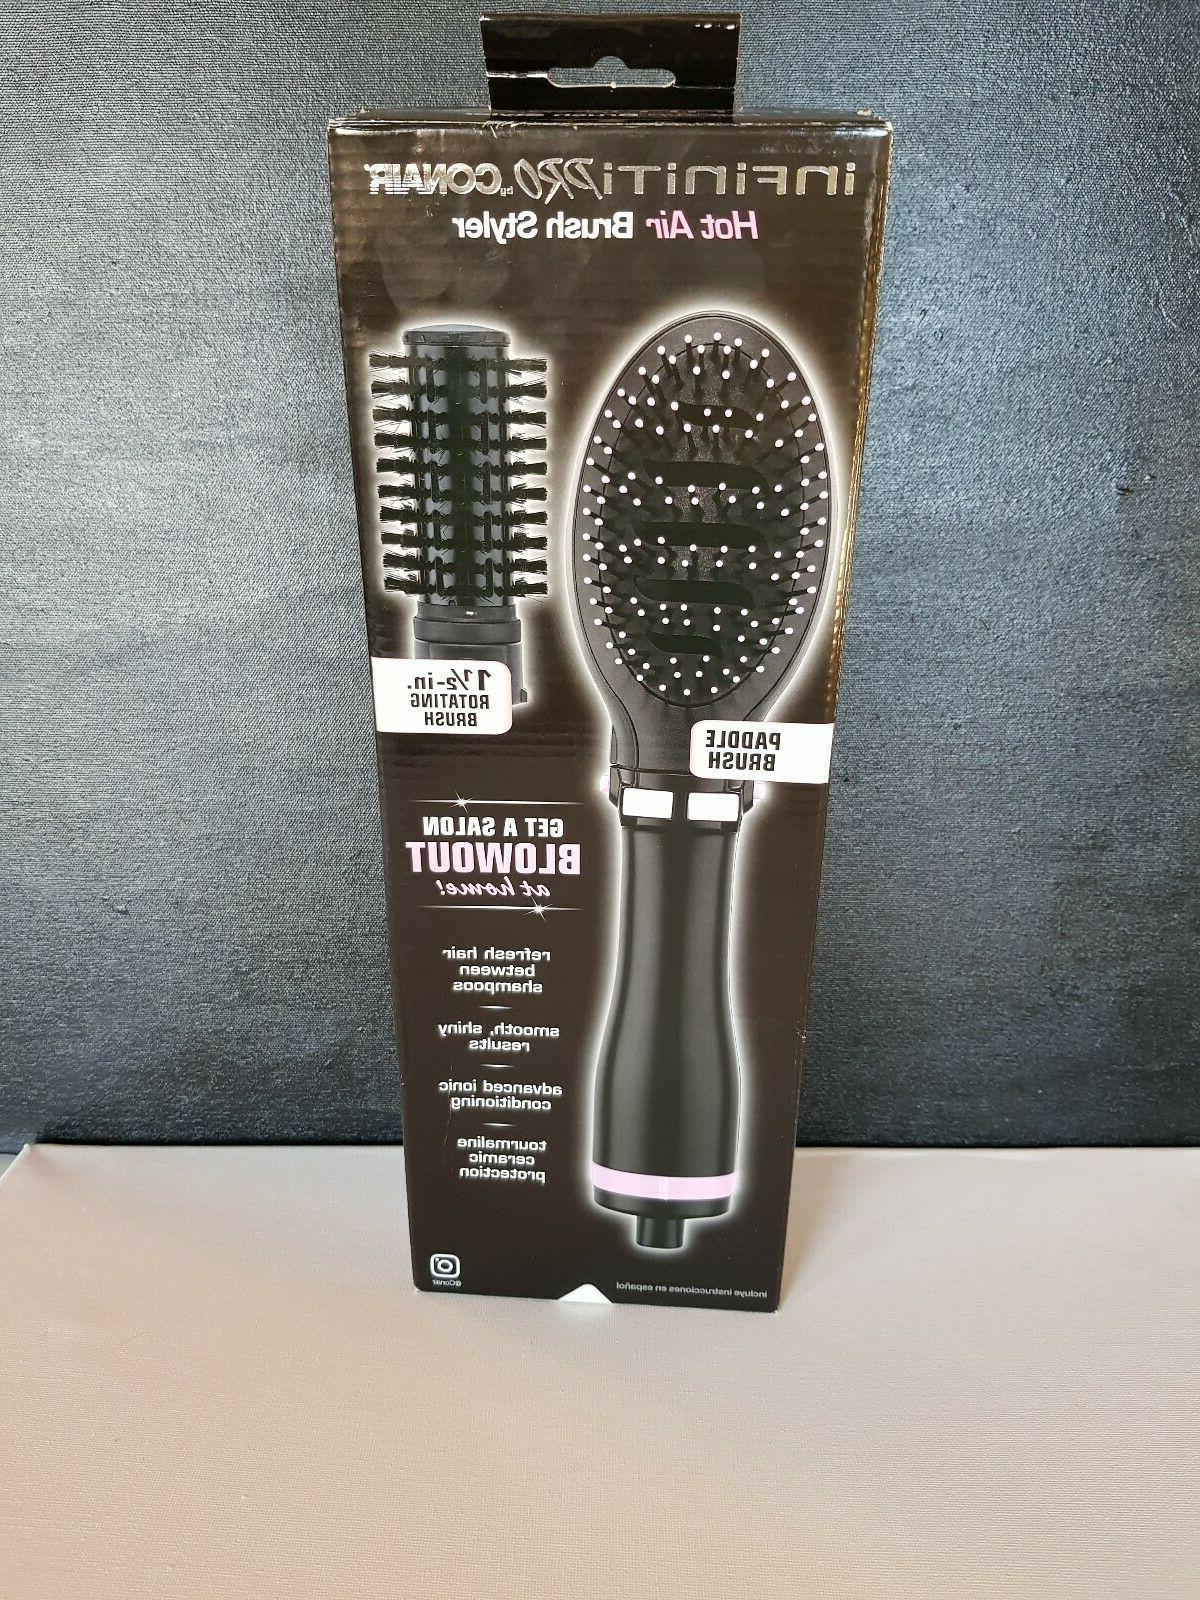 INFINITIPRO BY CONAIR Tourmaline Ceramic Hot Air Brush Style